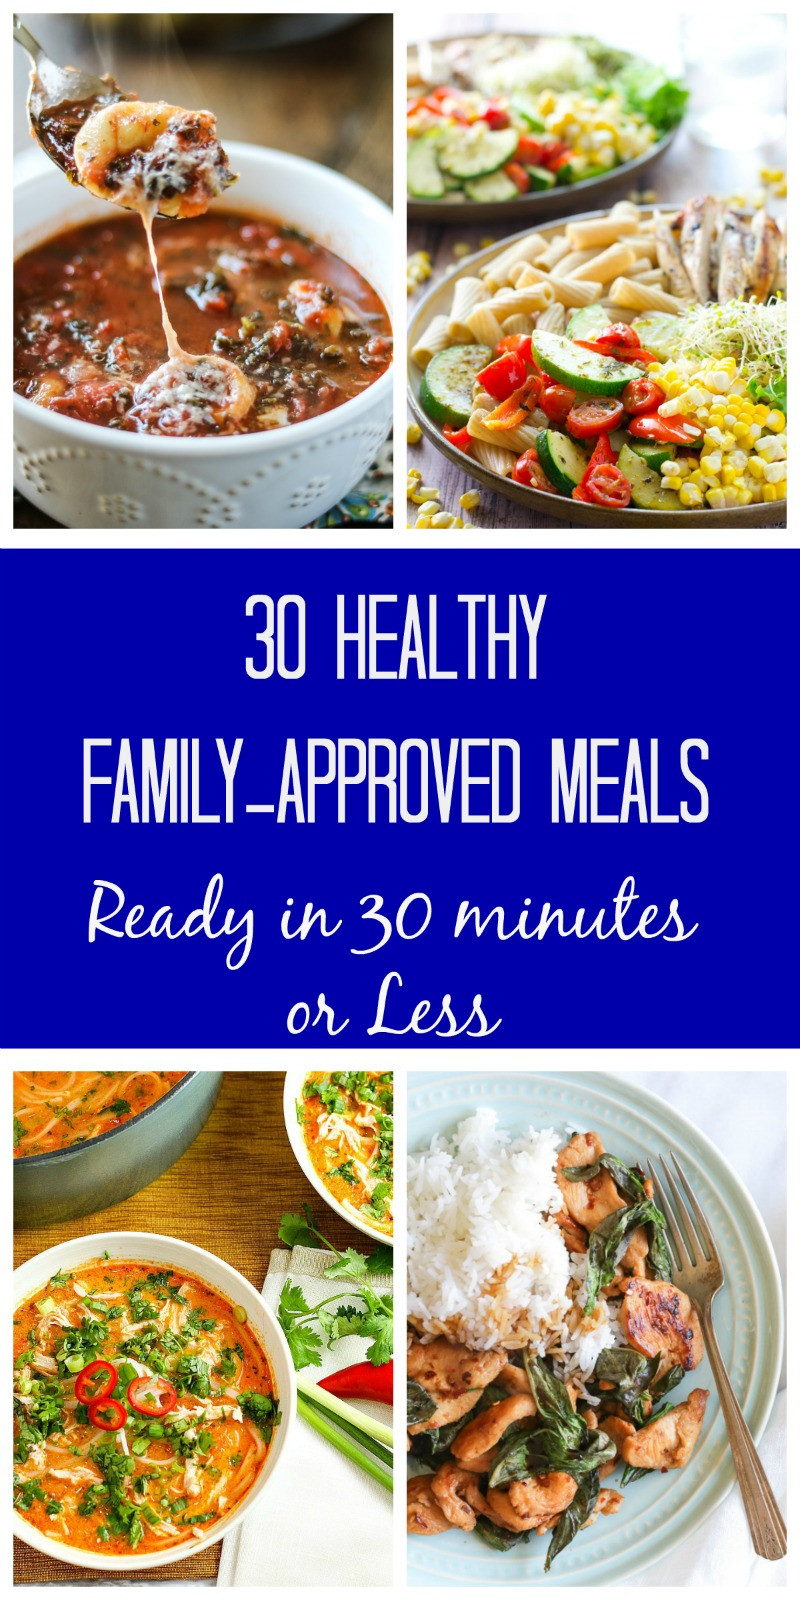 30 Minute Meals Healthy  30 Meals Made in 30 Minutes A Month of 30 Minute Meals